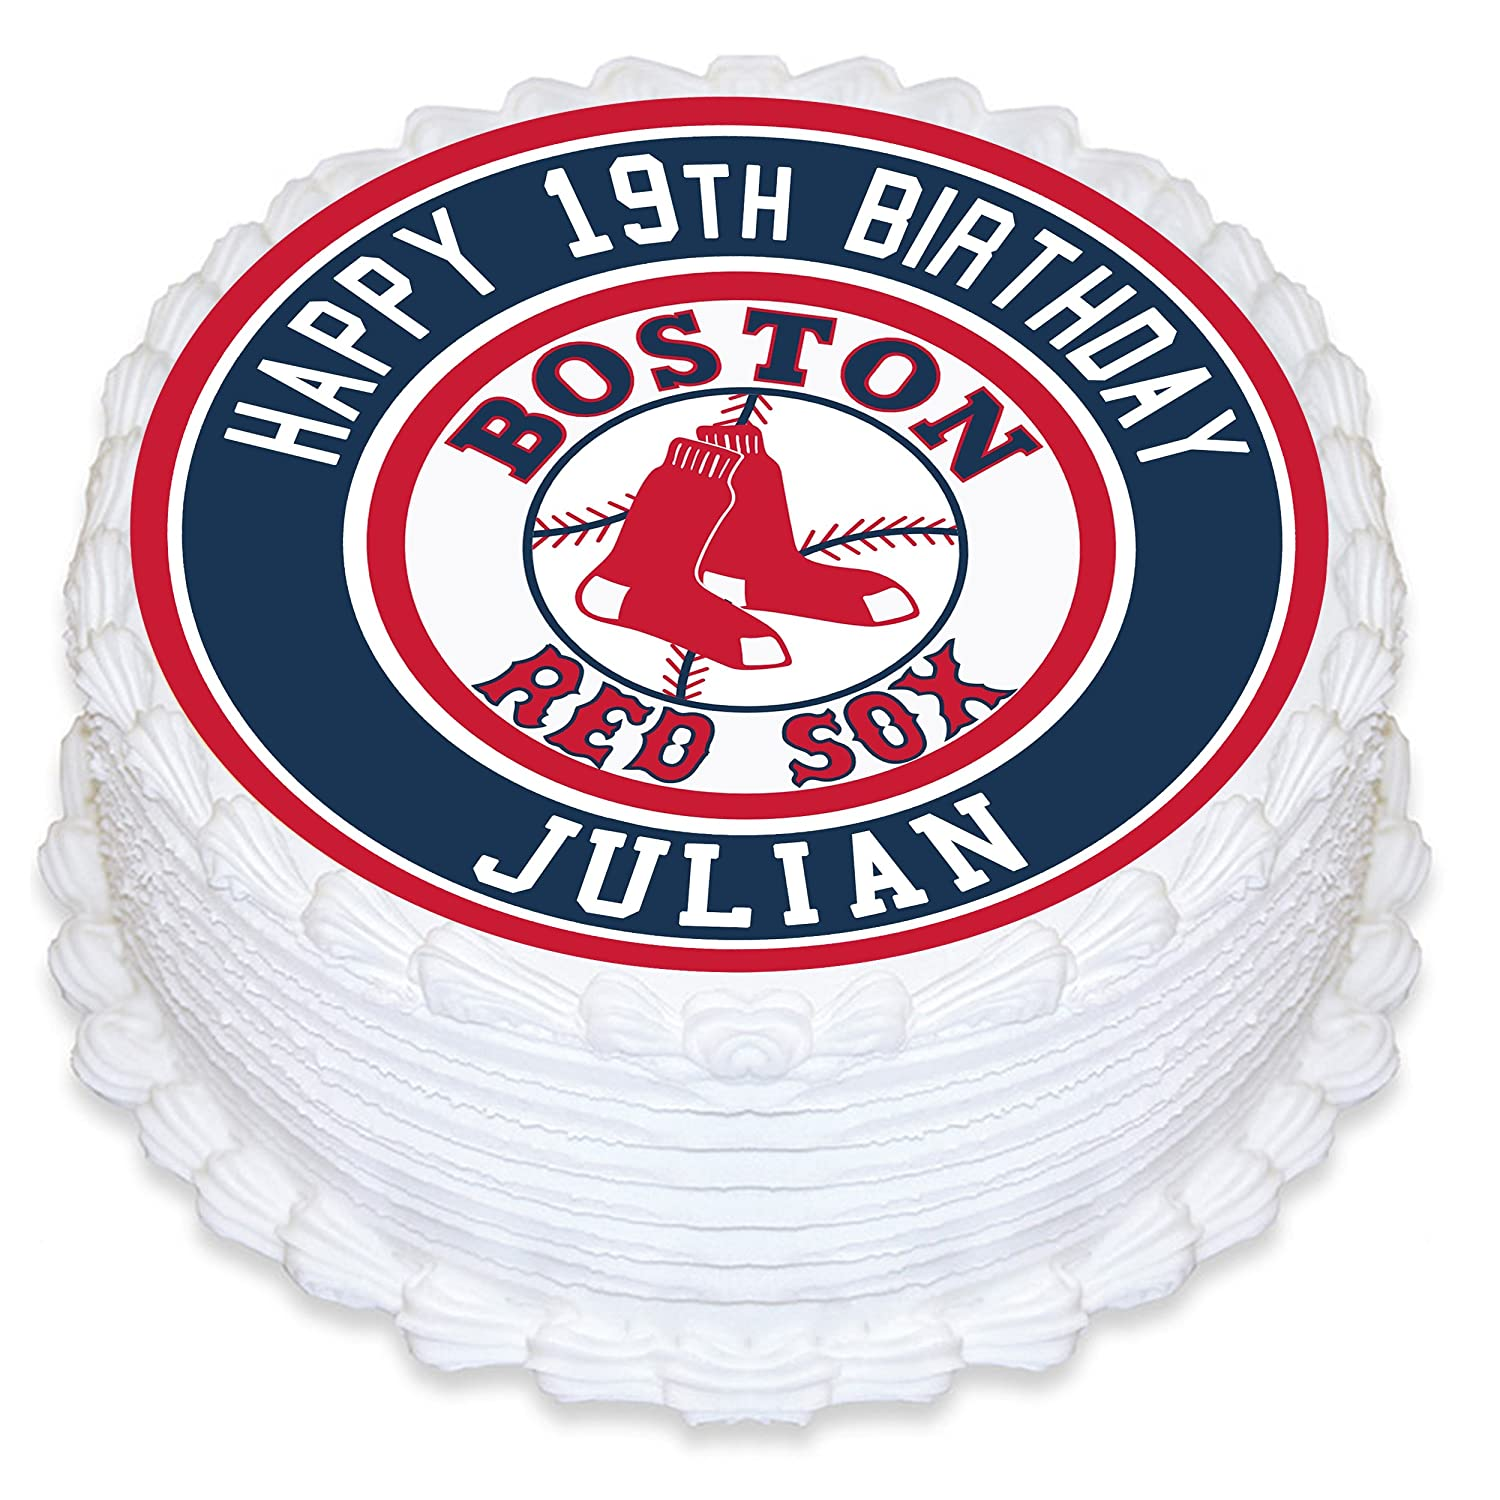 Boston Red Sox Edible Image Cake Topper Personalized Birthday 8 Round Circle Decoration Custom Sheet Party Sugar Frosting Transfer Fondant